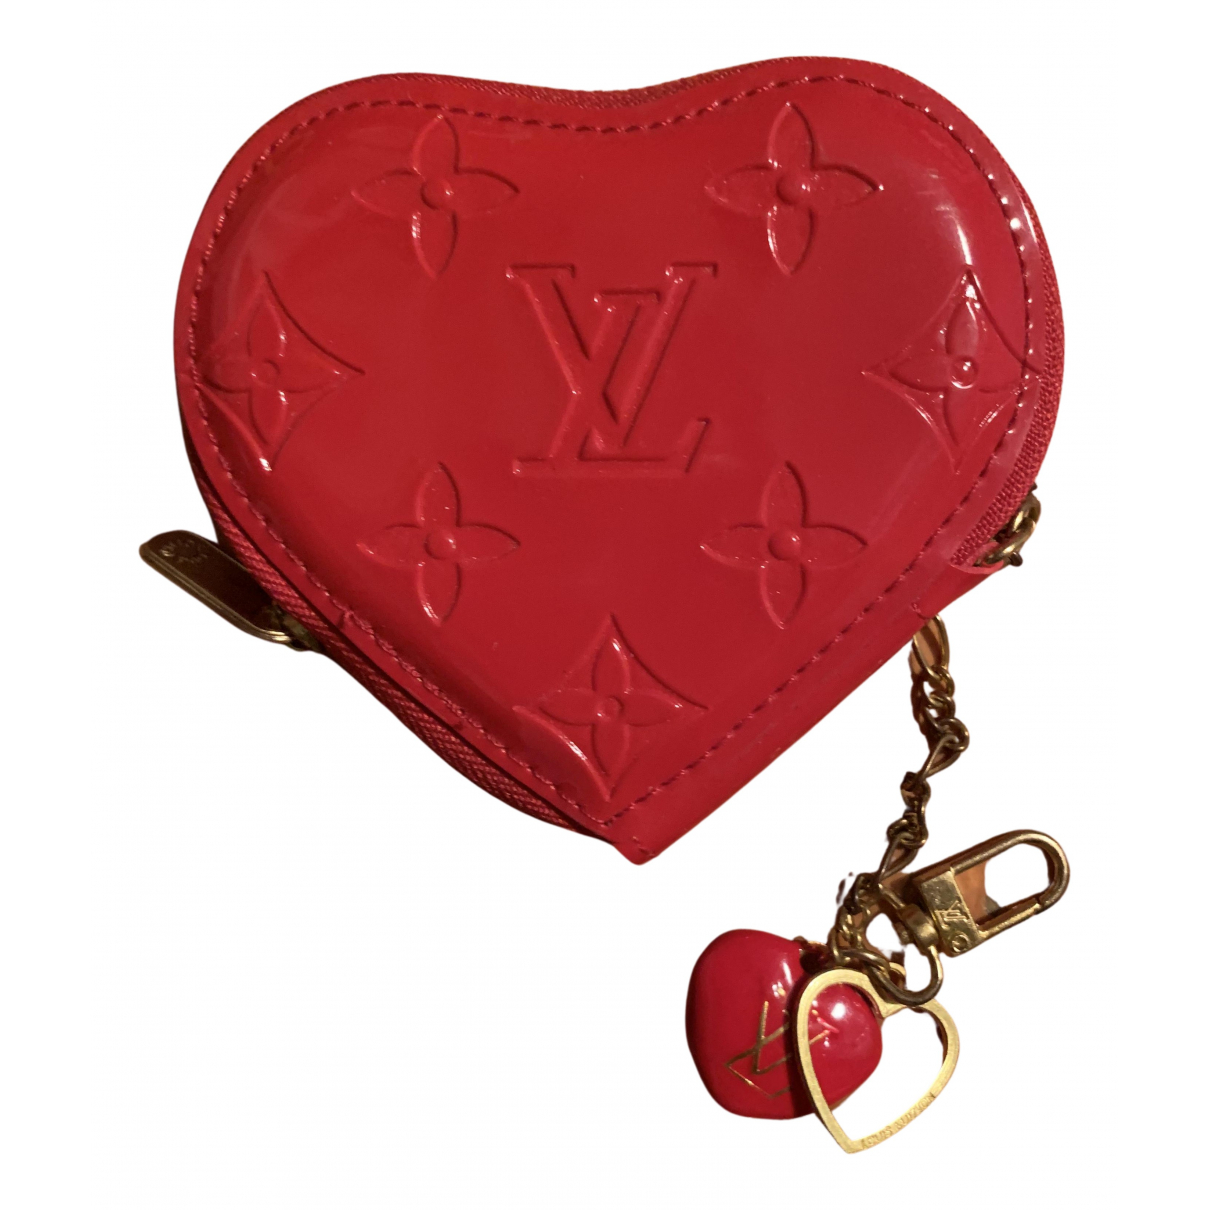 Louis Vuitton N Red Patent leather Purses, wallet & cases for Women N